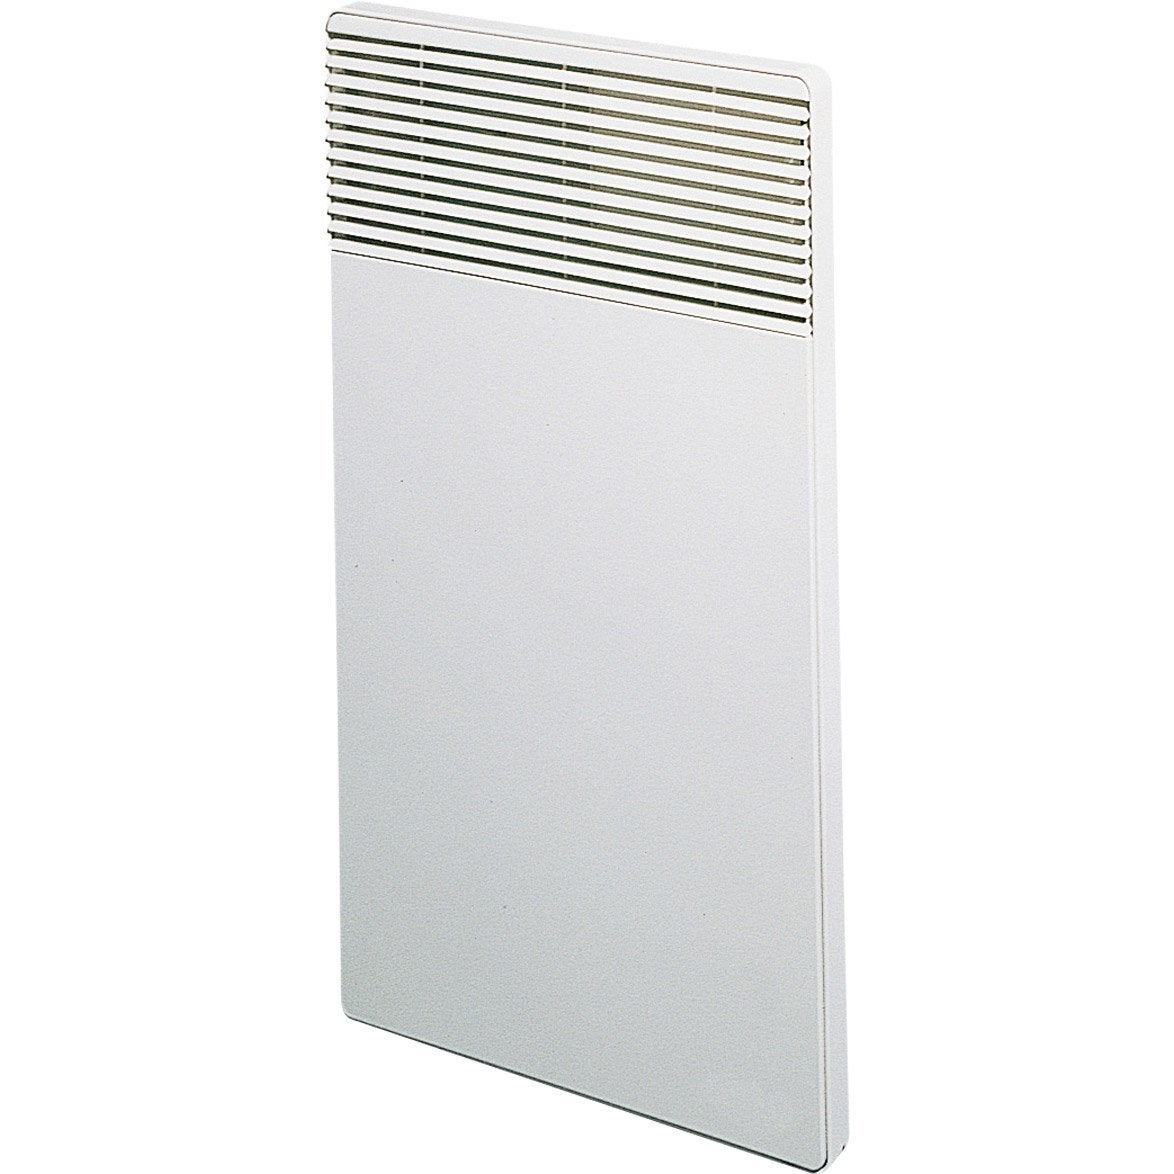 radiateur lectrique convection sauter lucki haut 500 w leroy merlin. Black Bedroom Furniture Sets. Home Design Ideas